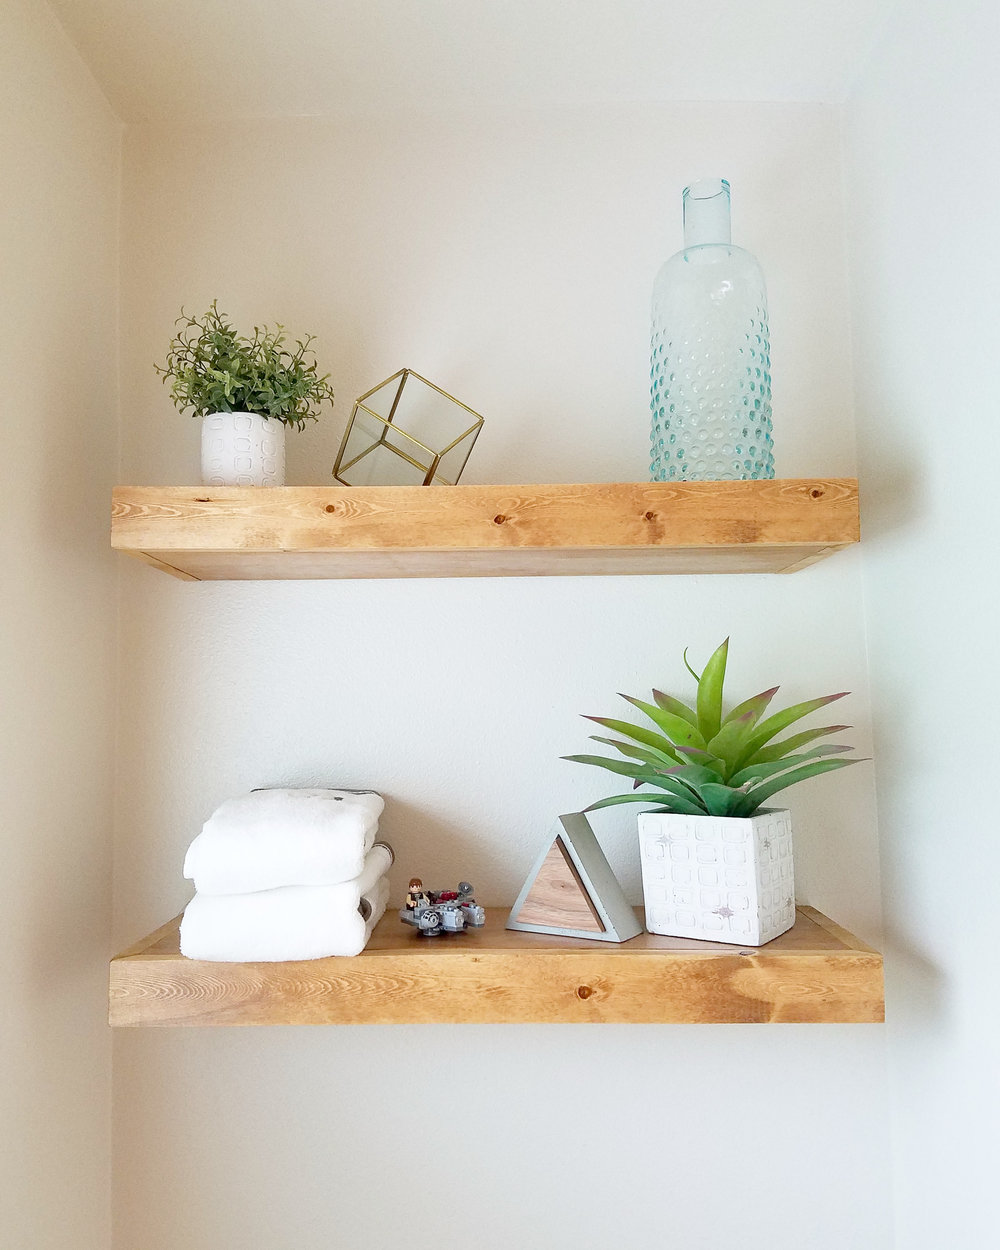 OSO DIY simple floating shelves